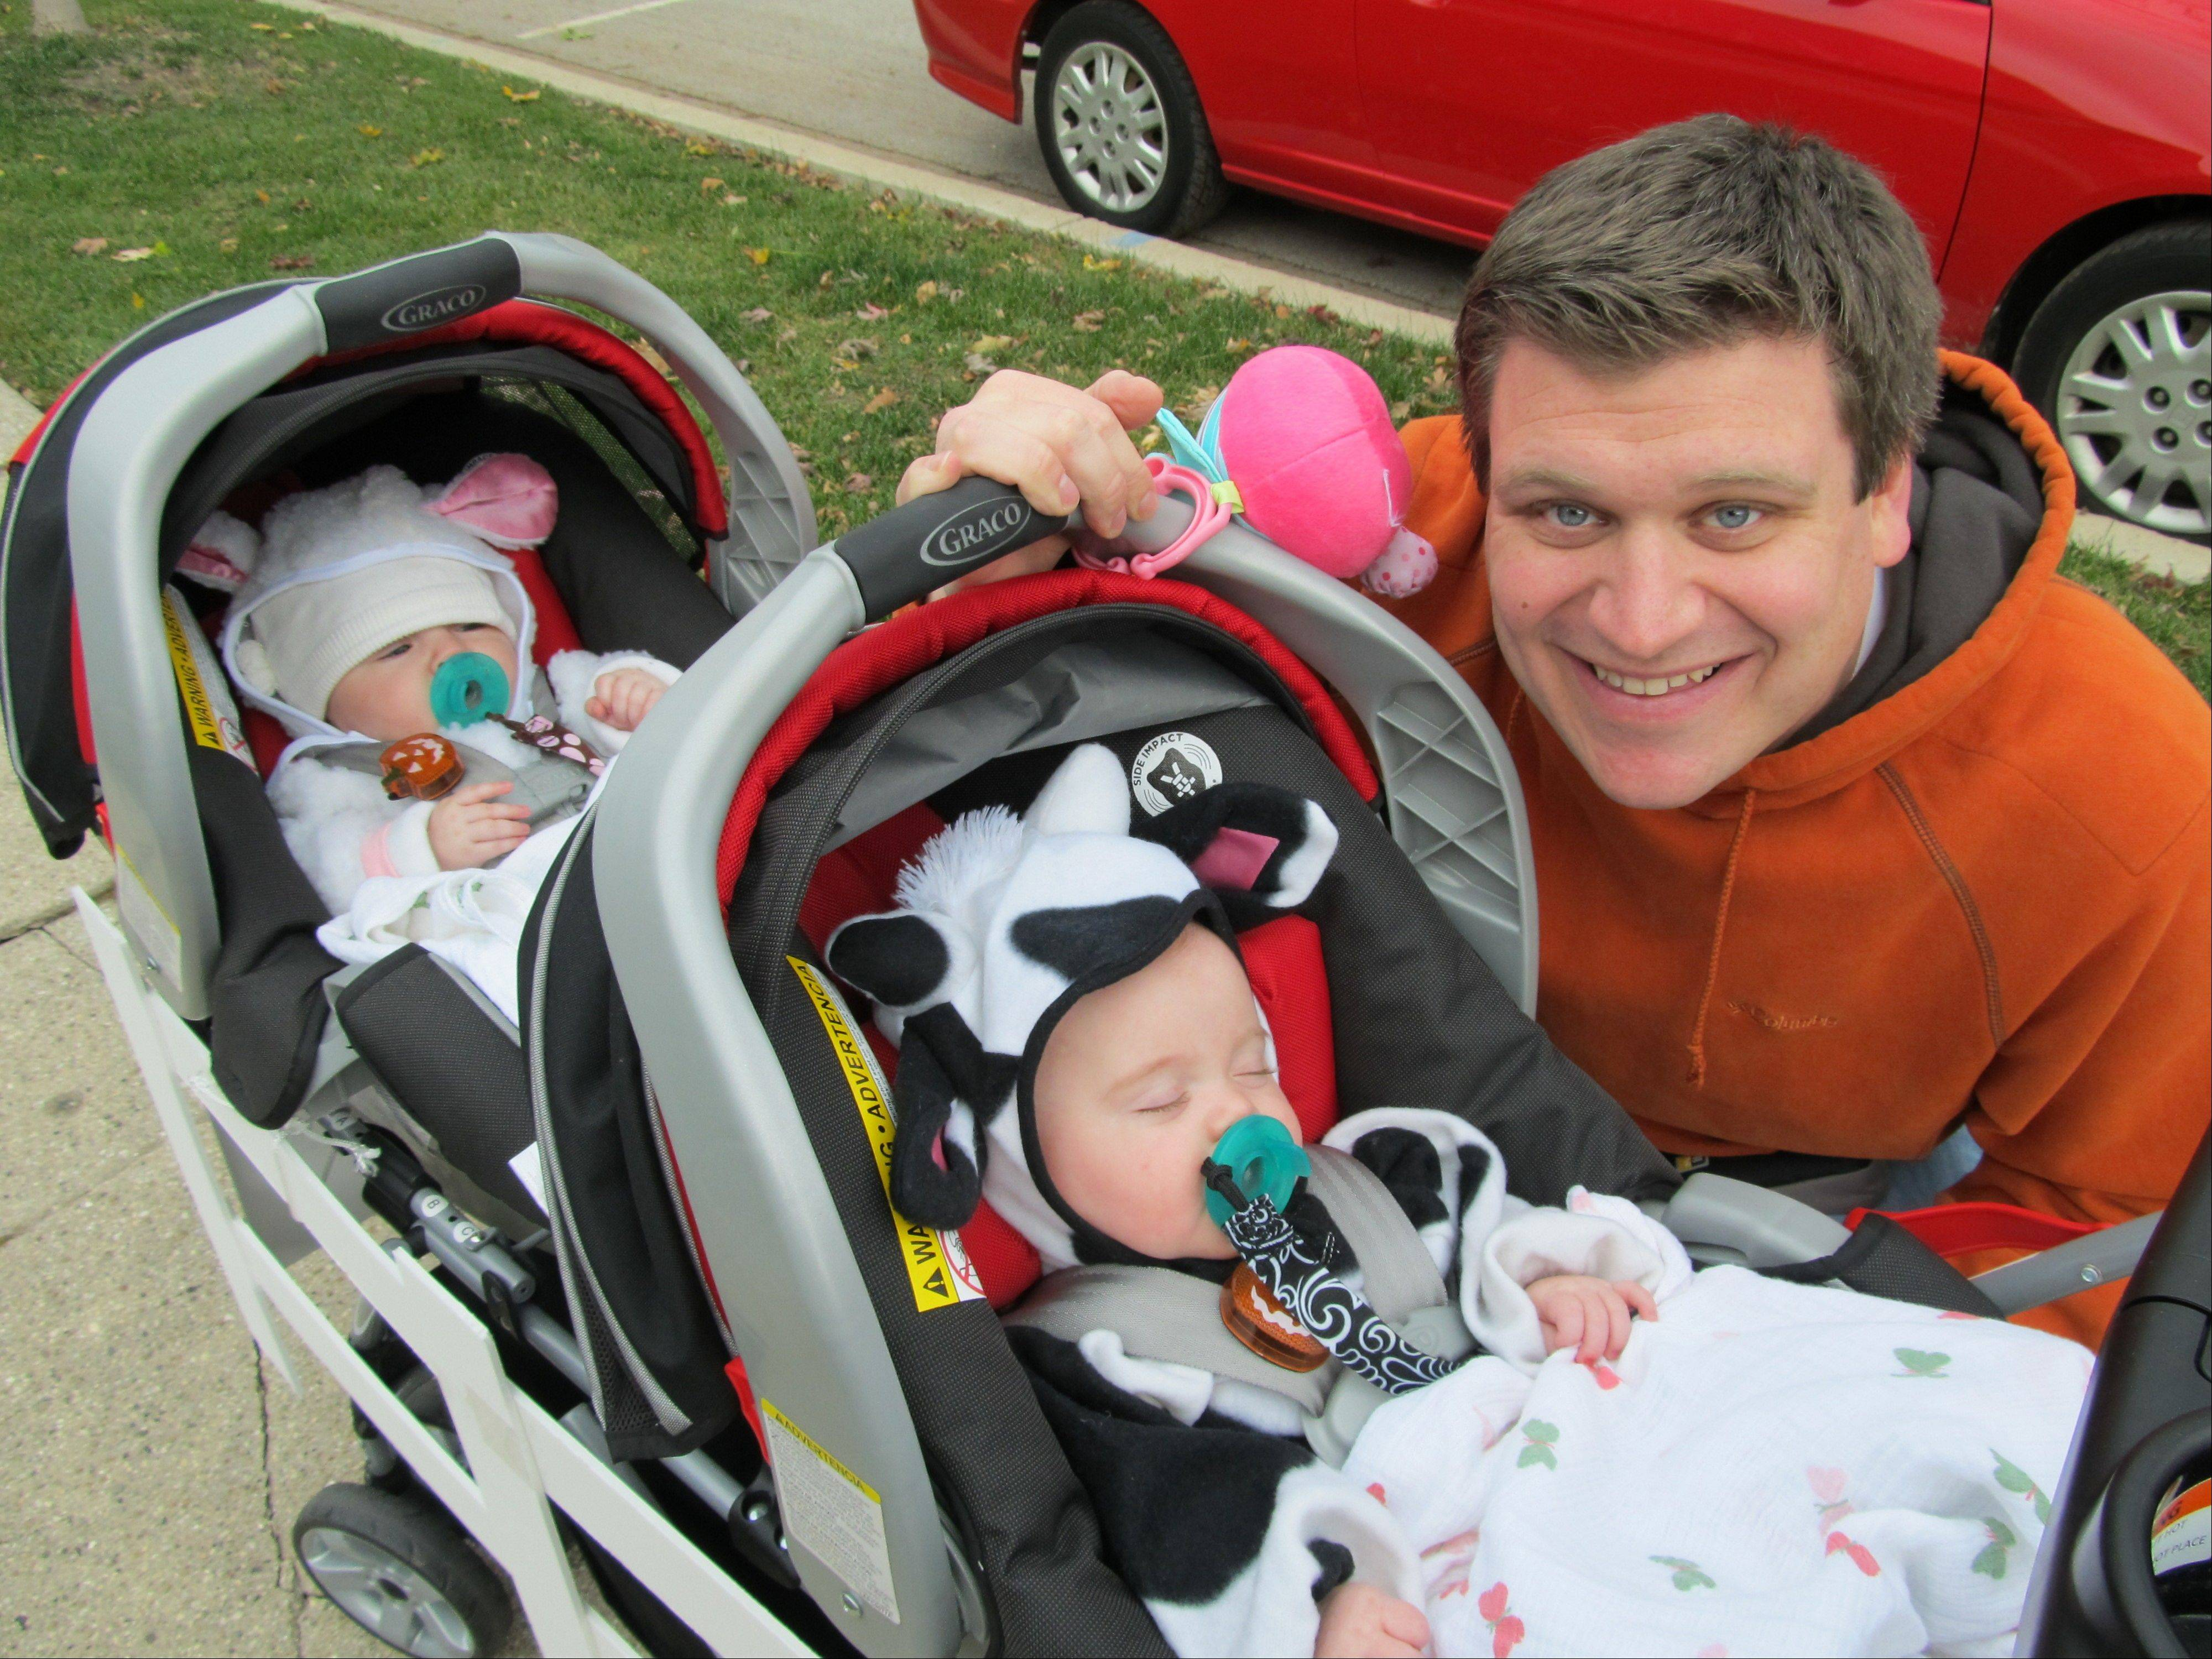 Lane Fraley of Wood Dale with the quadruplets. Nurses donated diapers and formula.